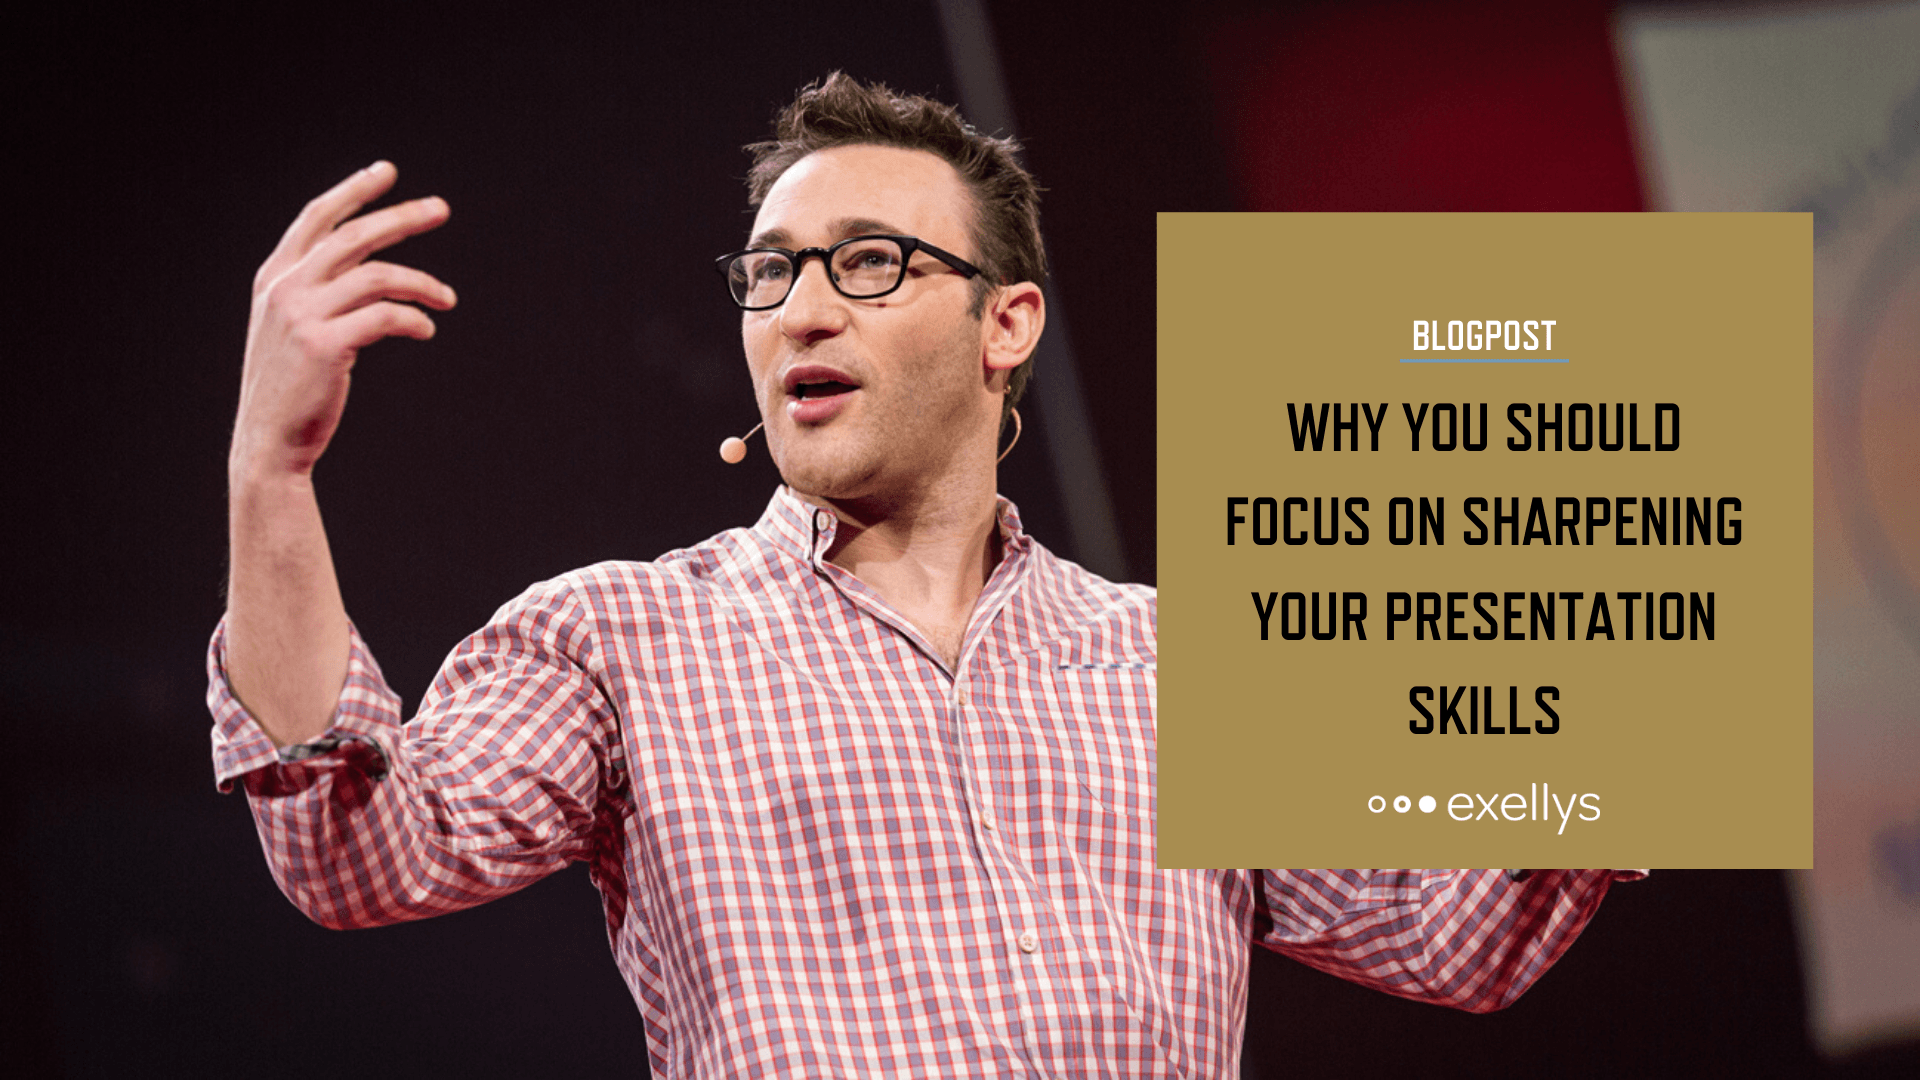 Why you should focus on sharpening your presentation skills